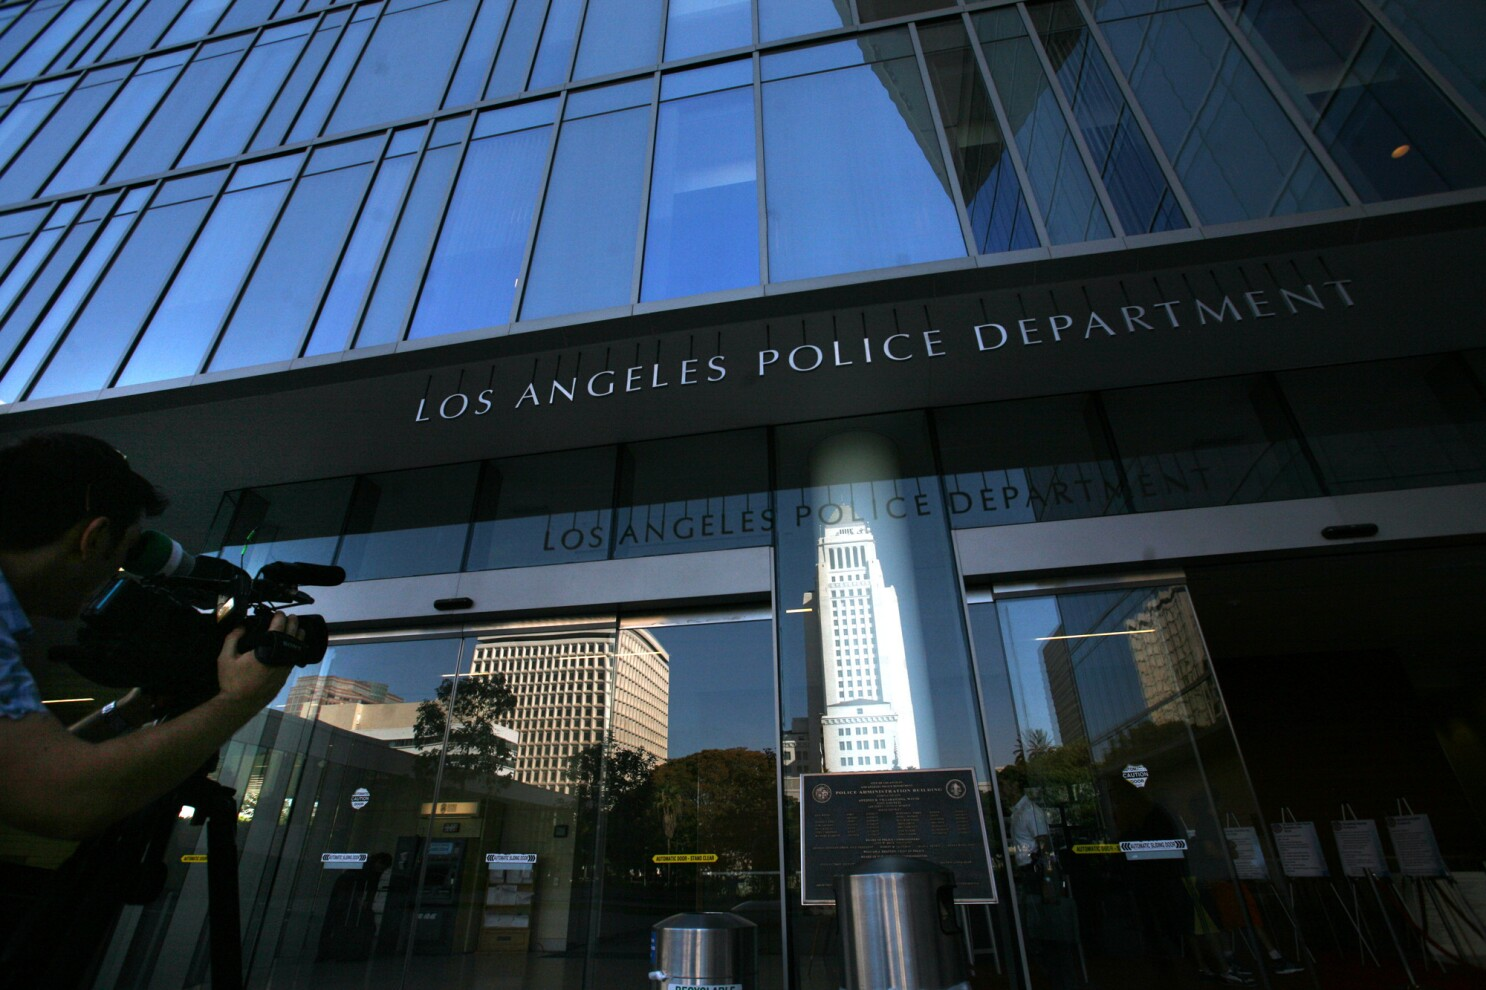 LAPD officer wins more than $1 million in disability discrimination lawsuit